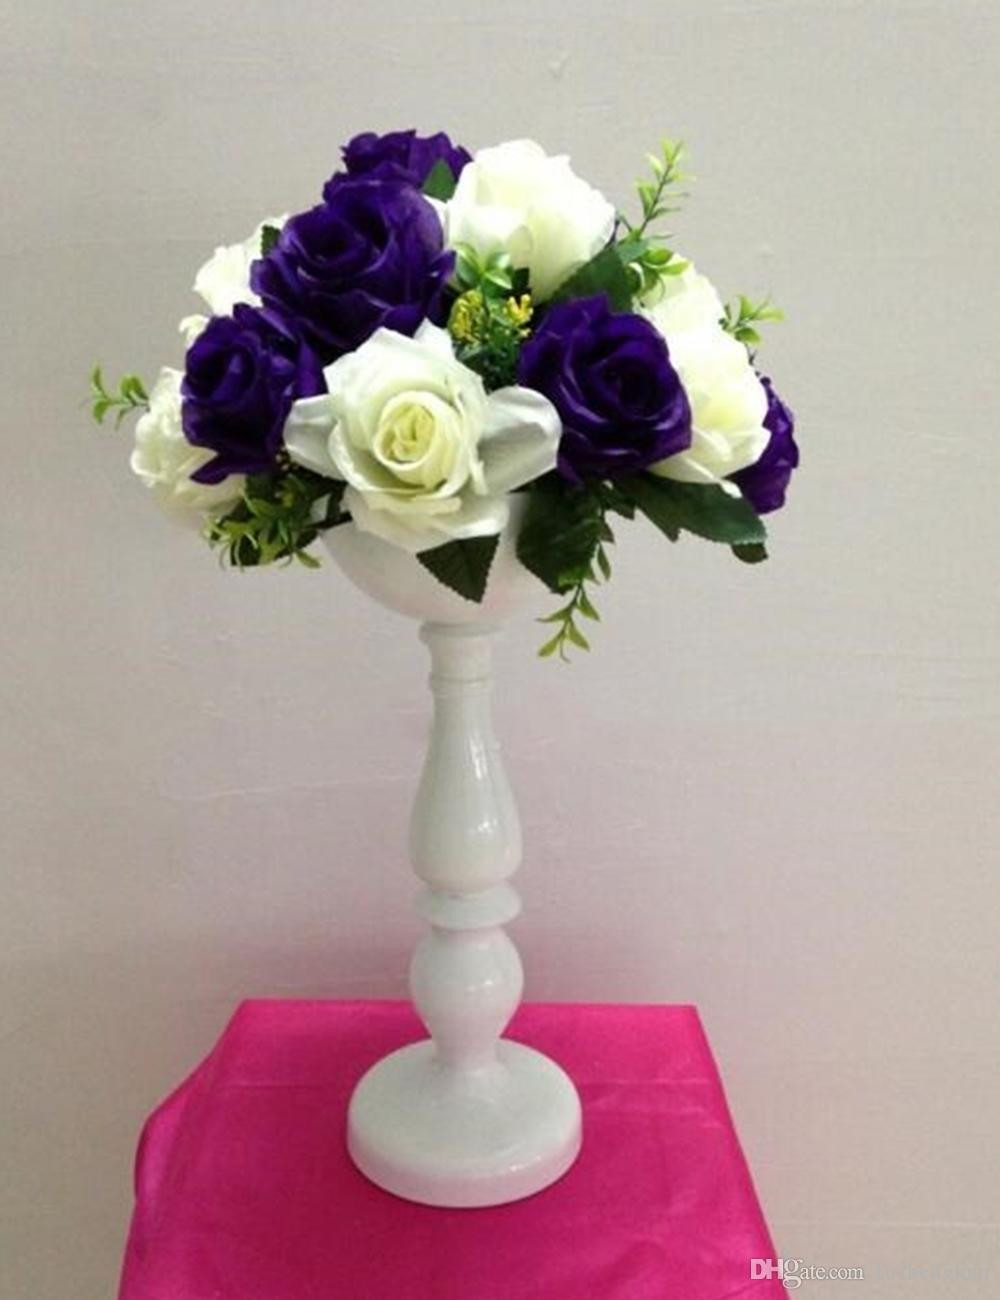 plastic pedestal vase of new arrive 37 cm tall white metal flower vase wedding table with new arrive 37 cm tall white metal flower vase wedding table centerpiece event home decor hotel road lead flower vase road lead online with 237 99 piece